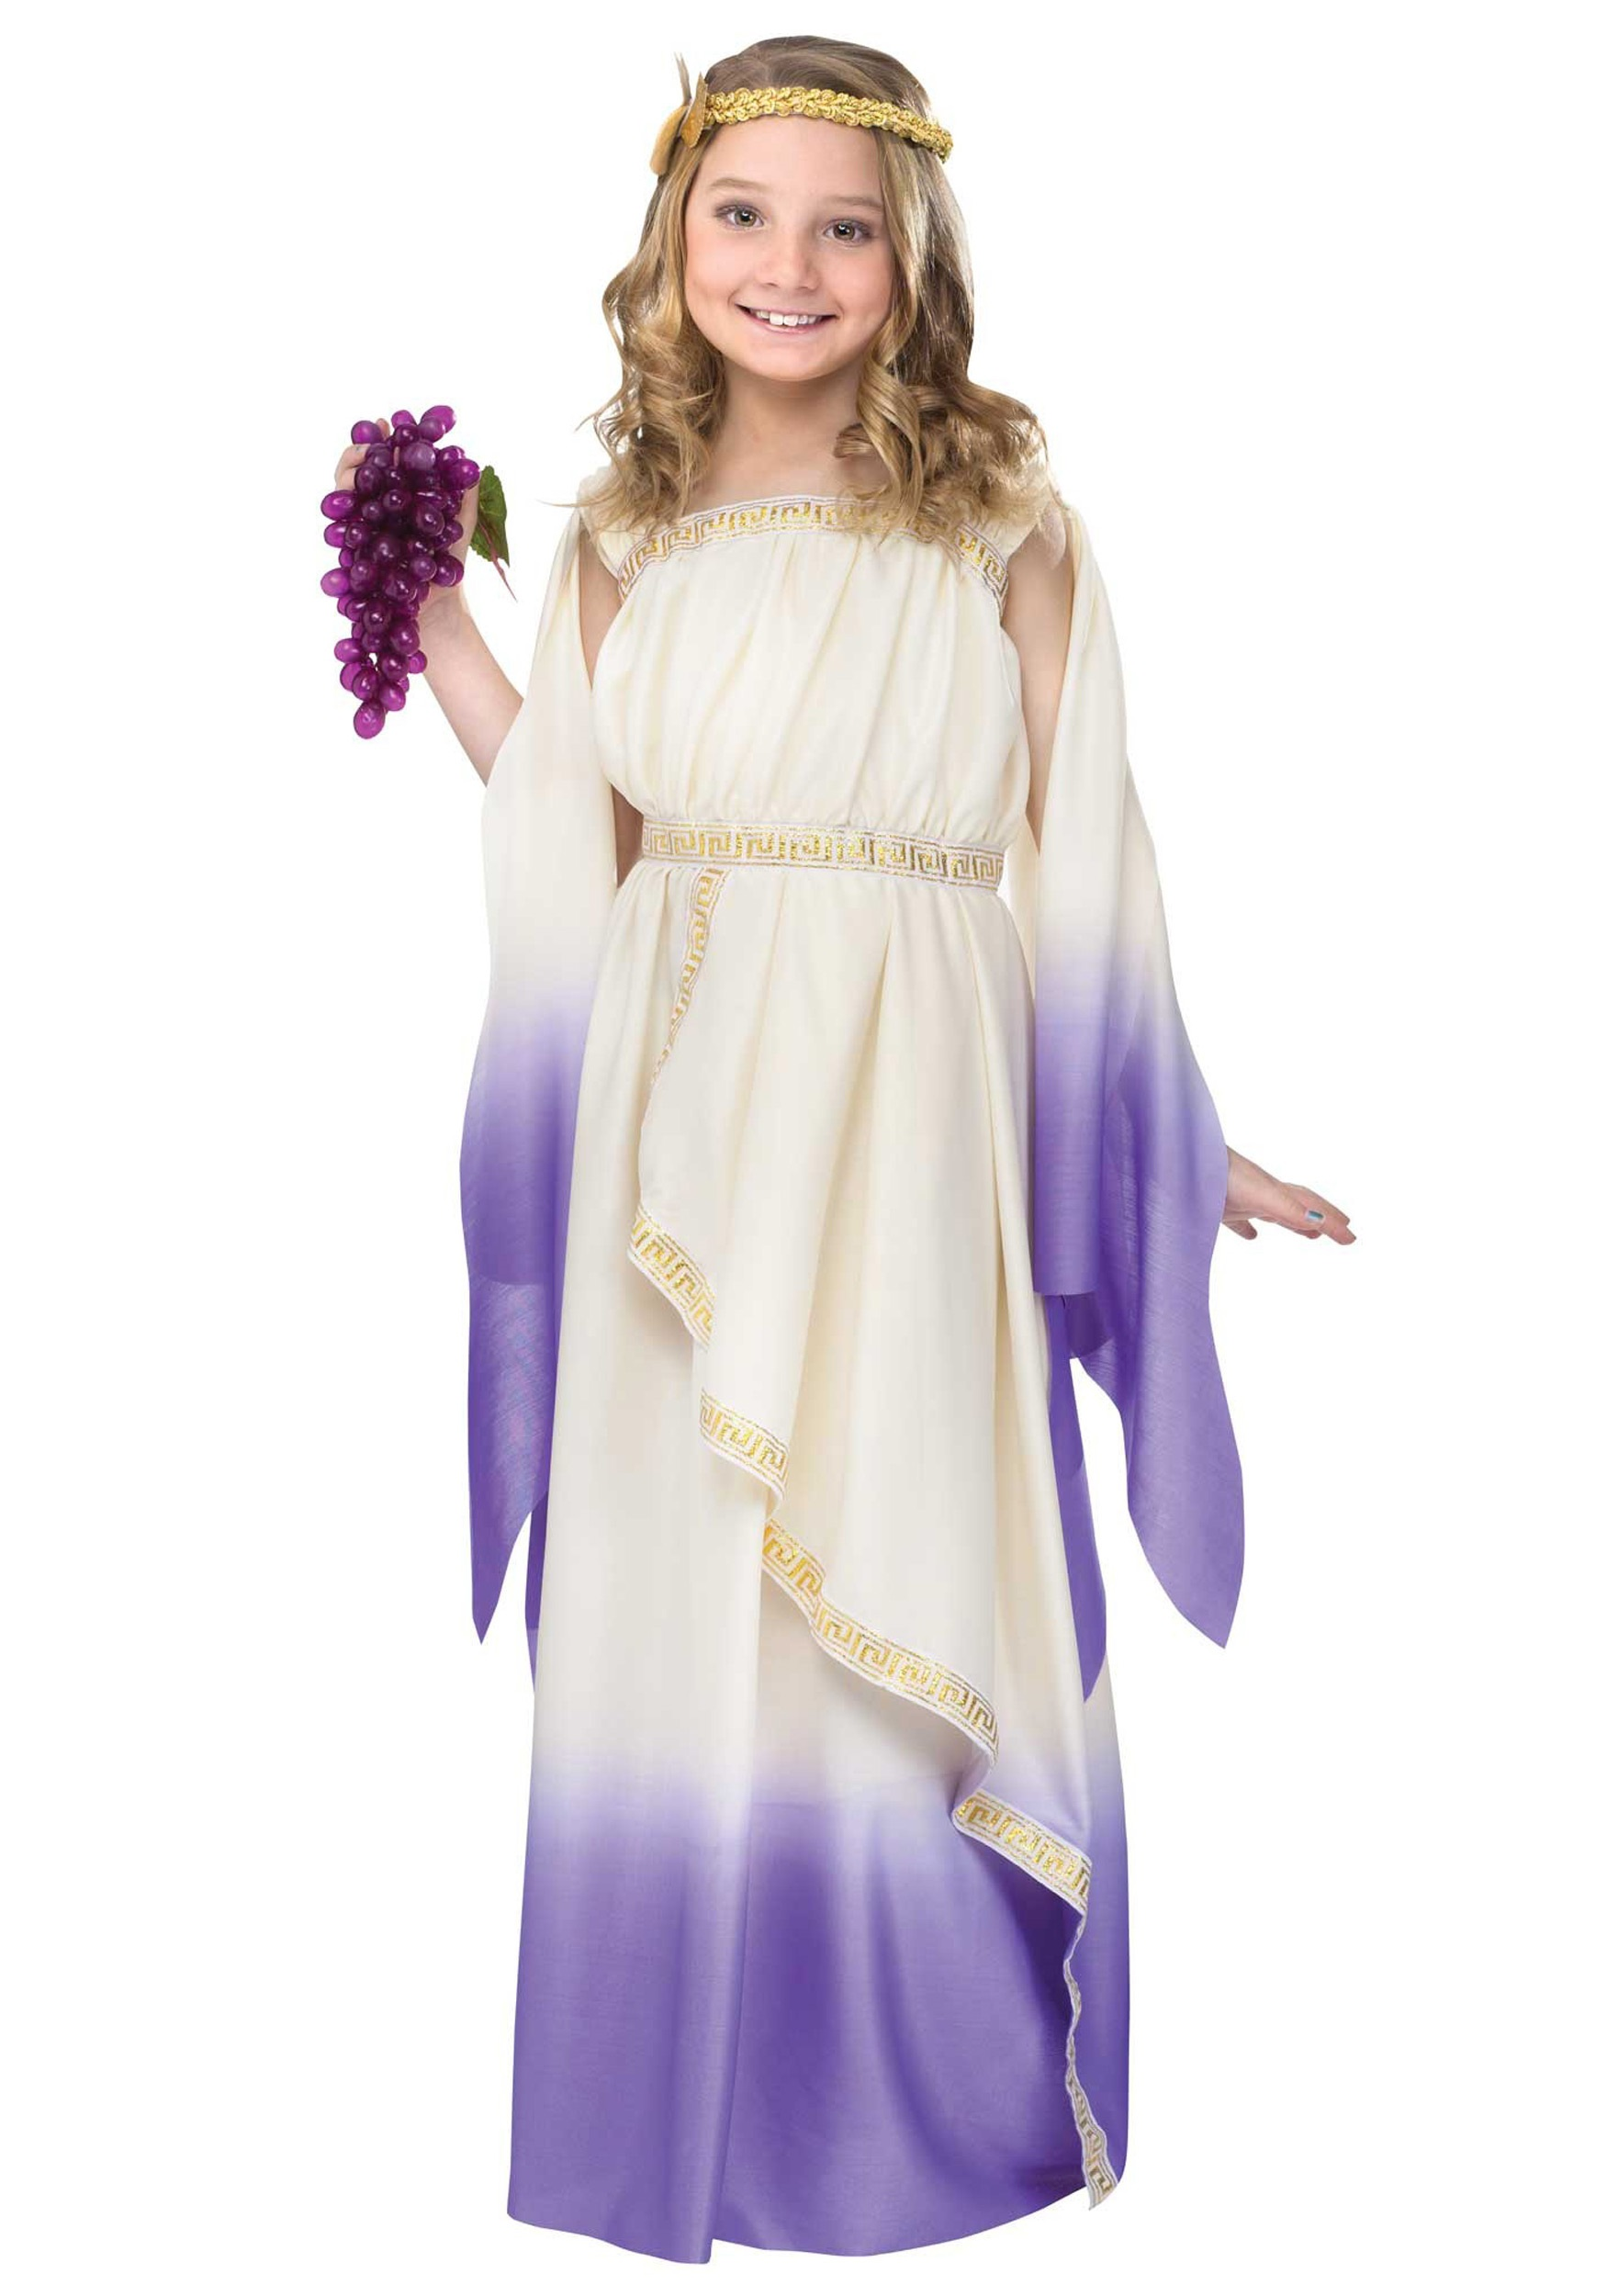 Top Roman Warriors & Greek Goddess Costumes - HalloweenCostumes.com BF54